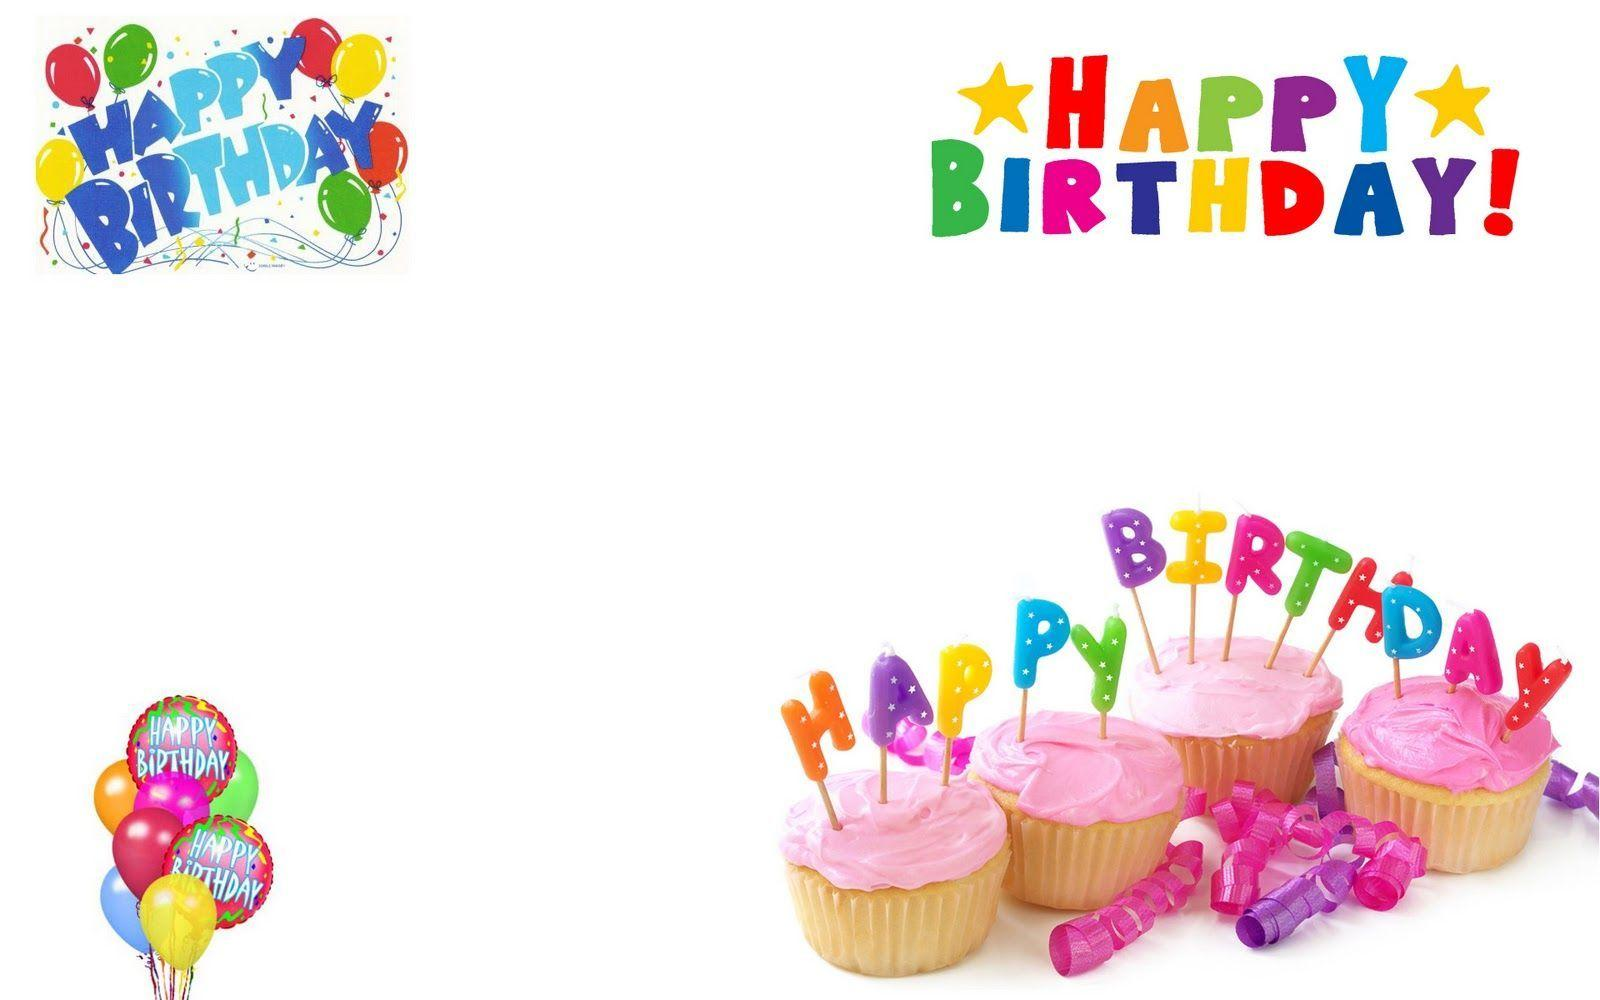 Happy Birthday Backgrounds Image Wallpaper Cave